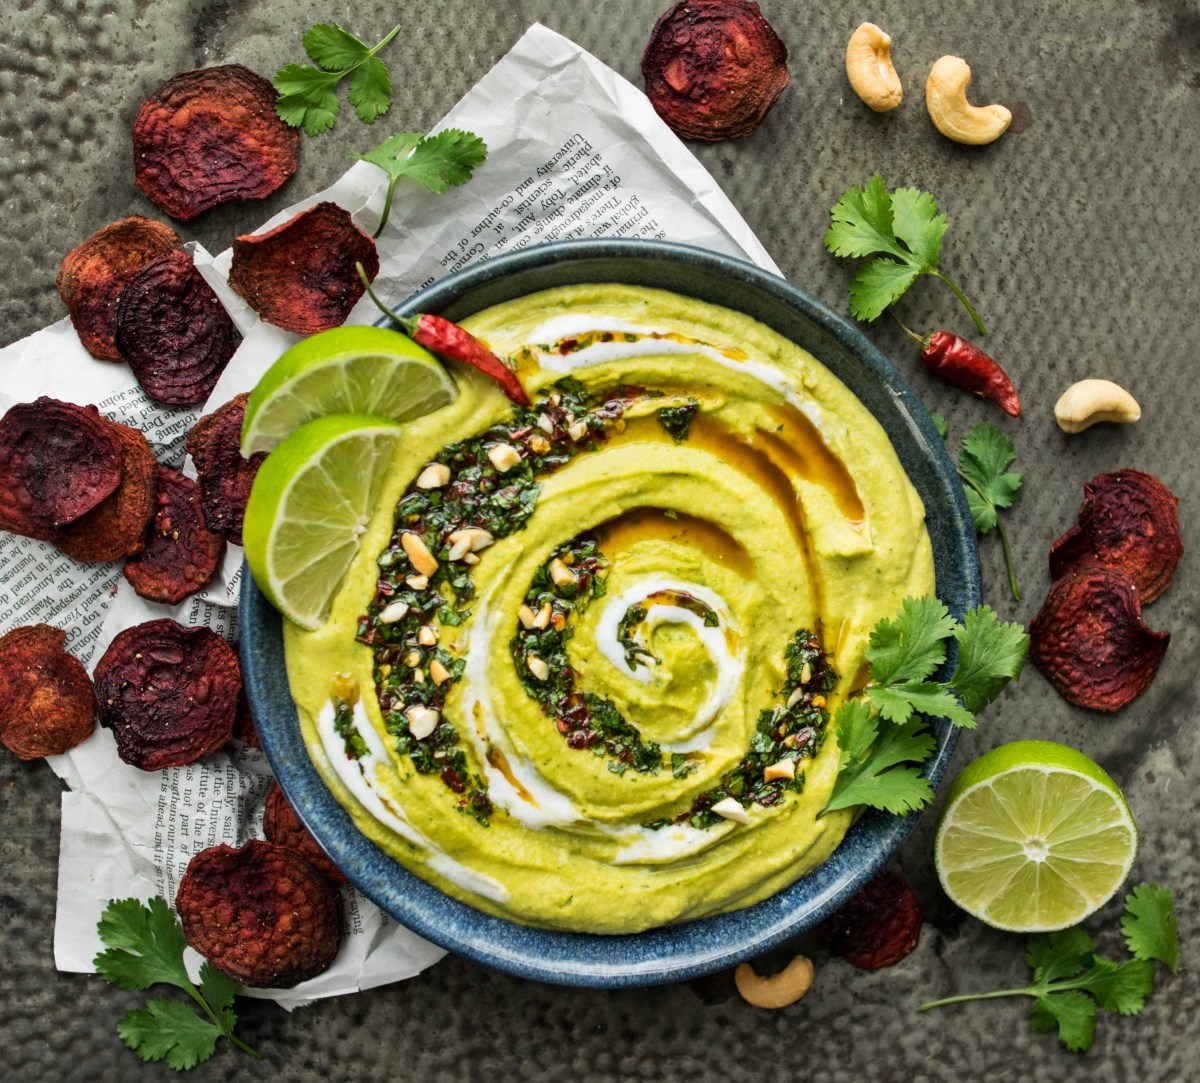 Coconut Green Curry Hummus with Baked Beet Chips